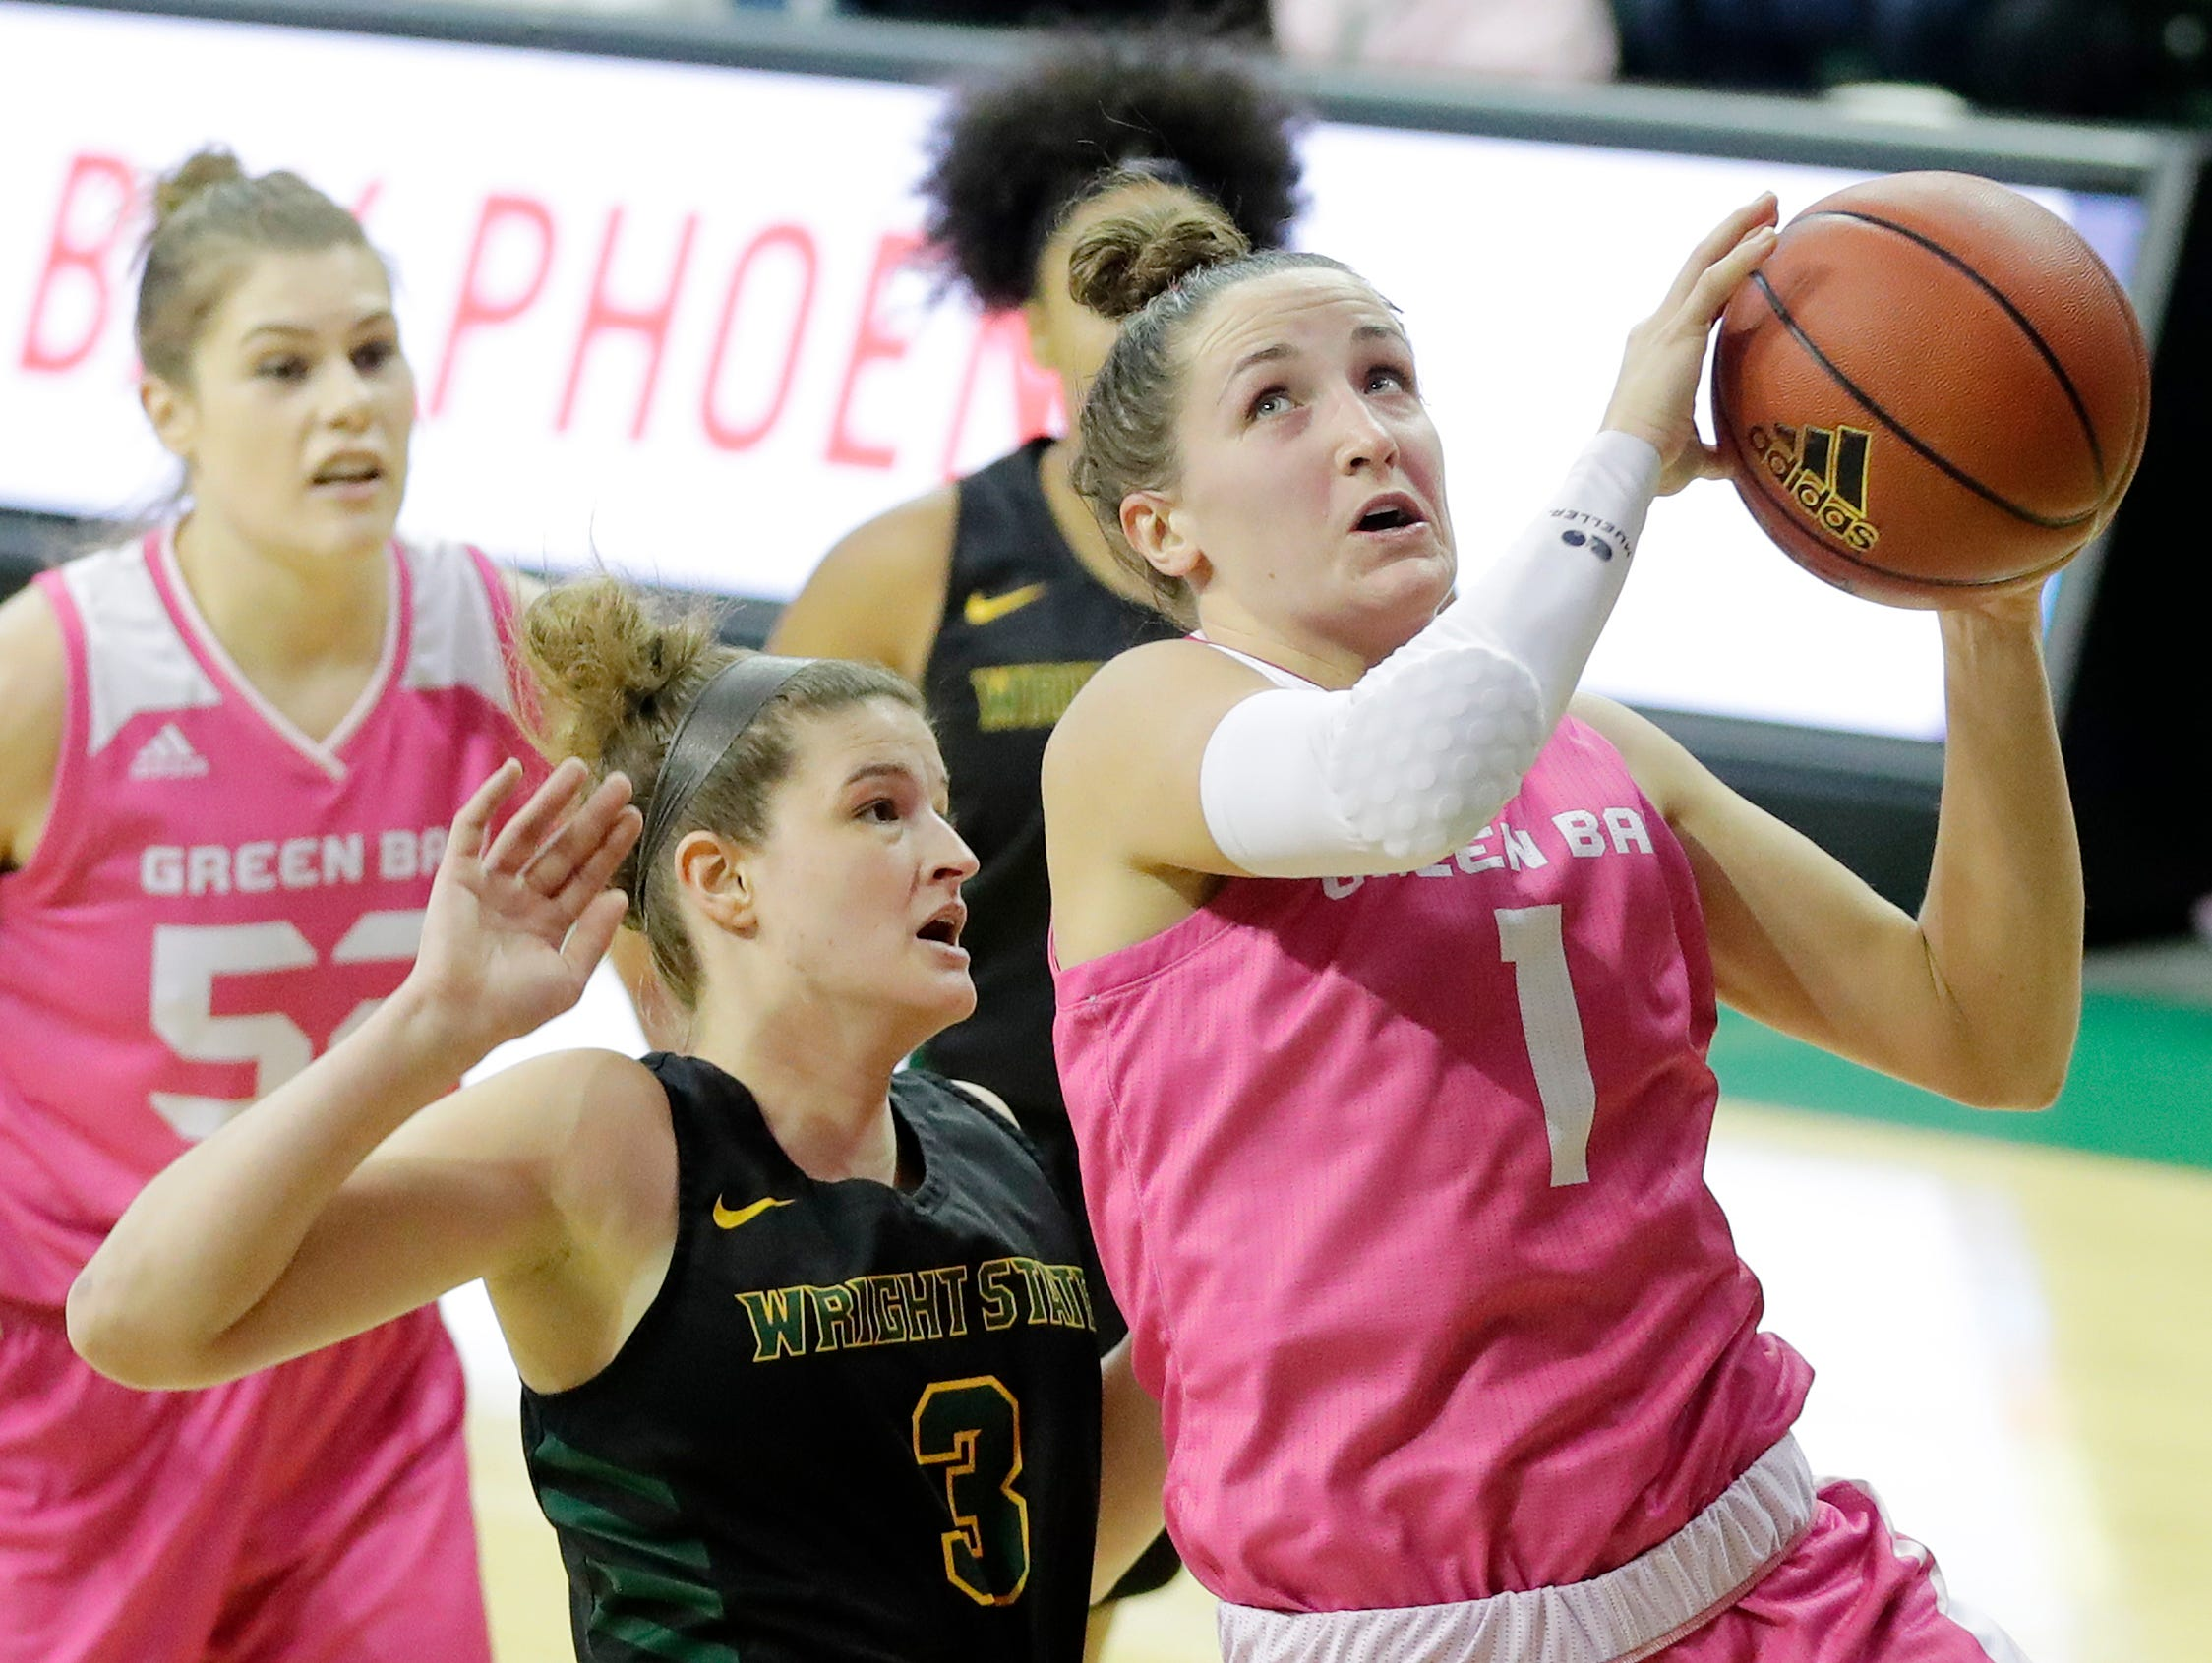 Green Bay Phoenix guard Jen Wellnitz (1) drives to the basket against Wright State Raiders guard Emily Vogelpohl (3) in a Horizon League women's basketball game at the Kress Center on Saturday, February 9, 2019 in Green Bay, Wis.